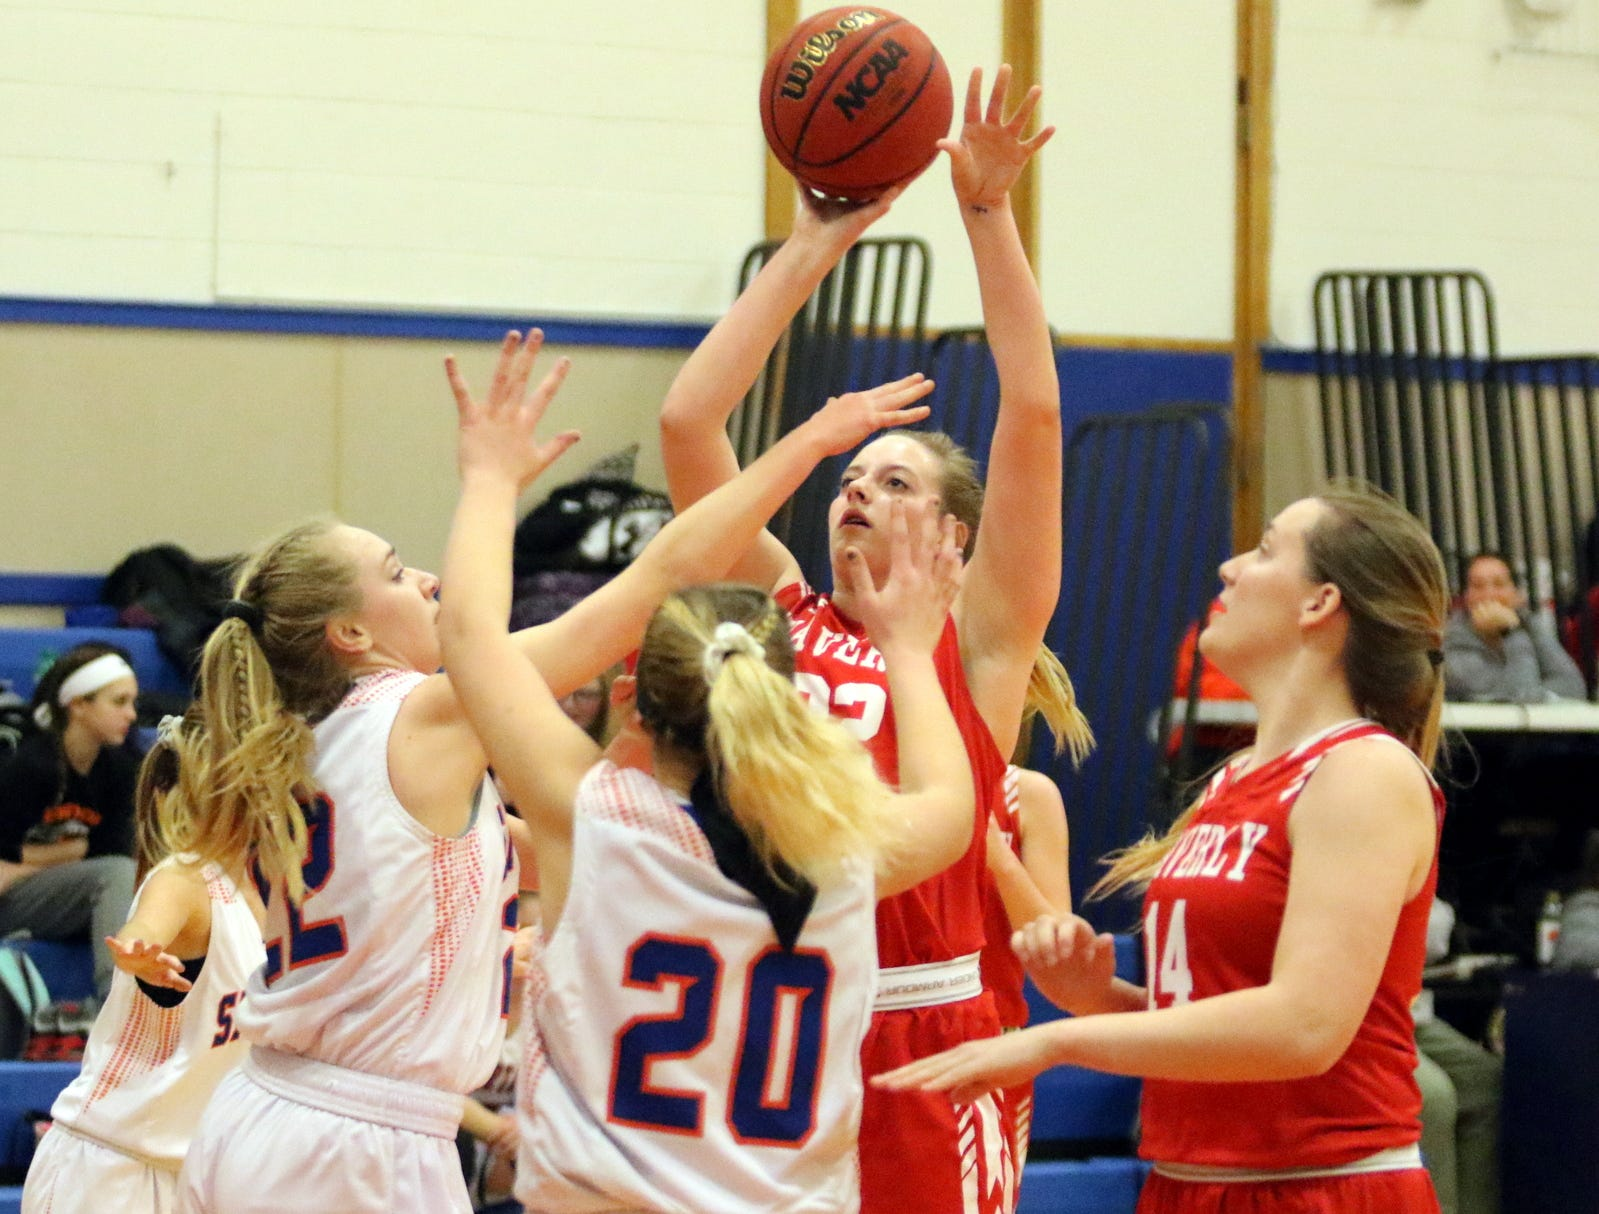 Action from the Waverly girls basketball team's 72-29 victory over Thomas A. Edison on Feb. 1, 2019 in Elmira Heights.